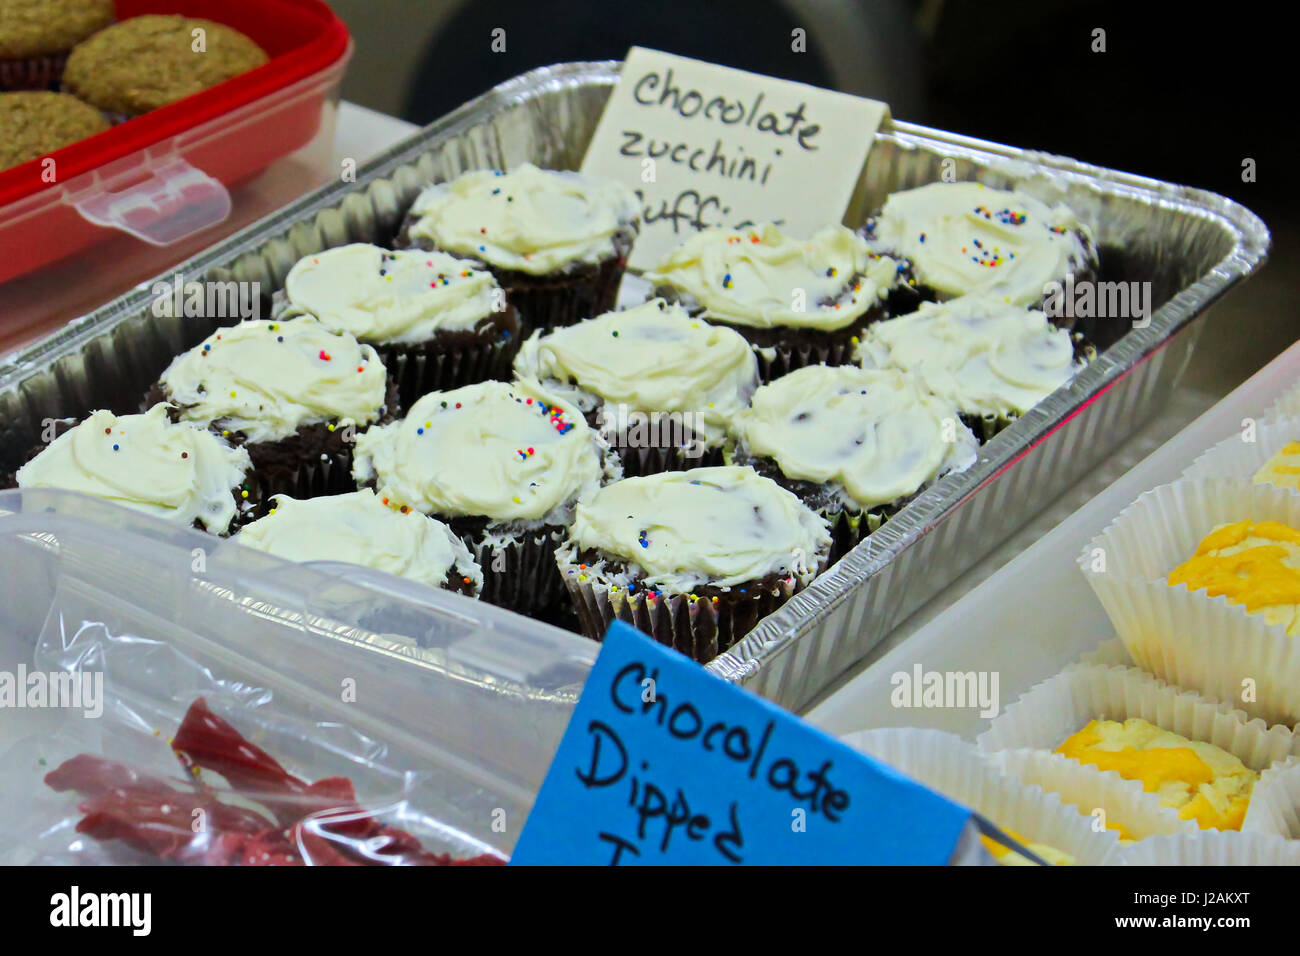 Items set up for sale at a bake sale. - Stock Image